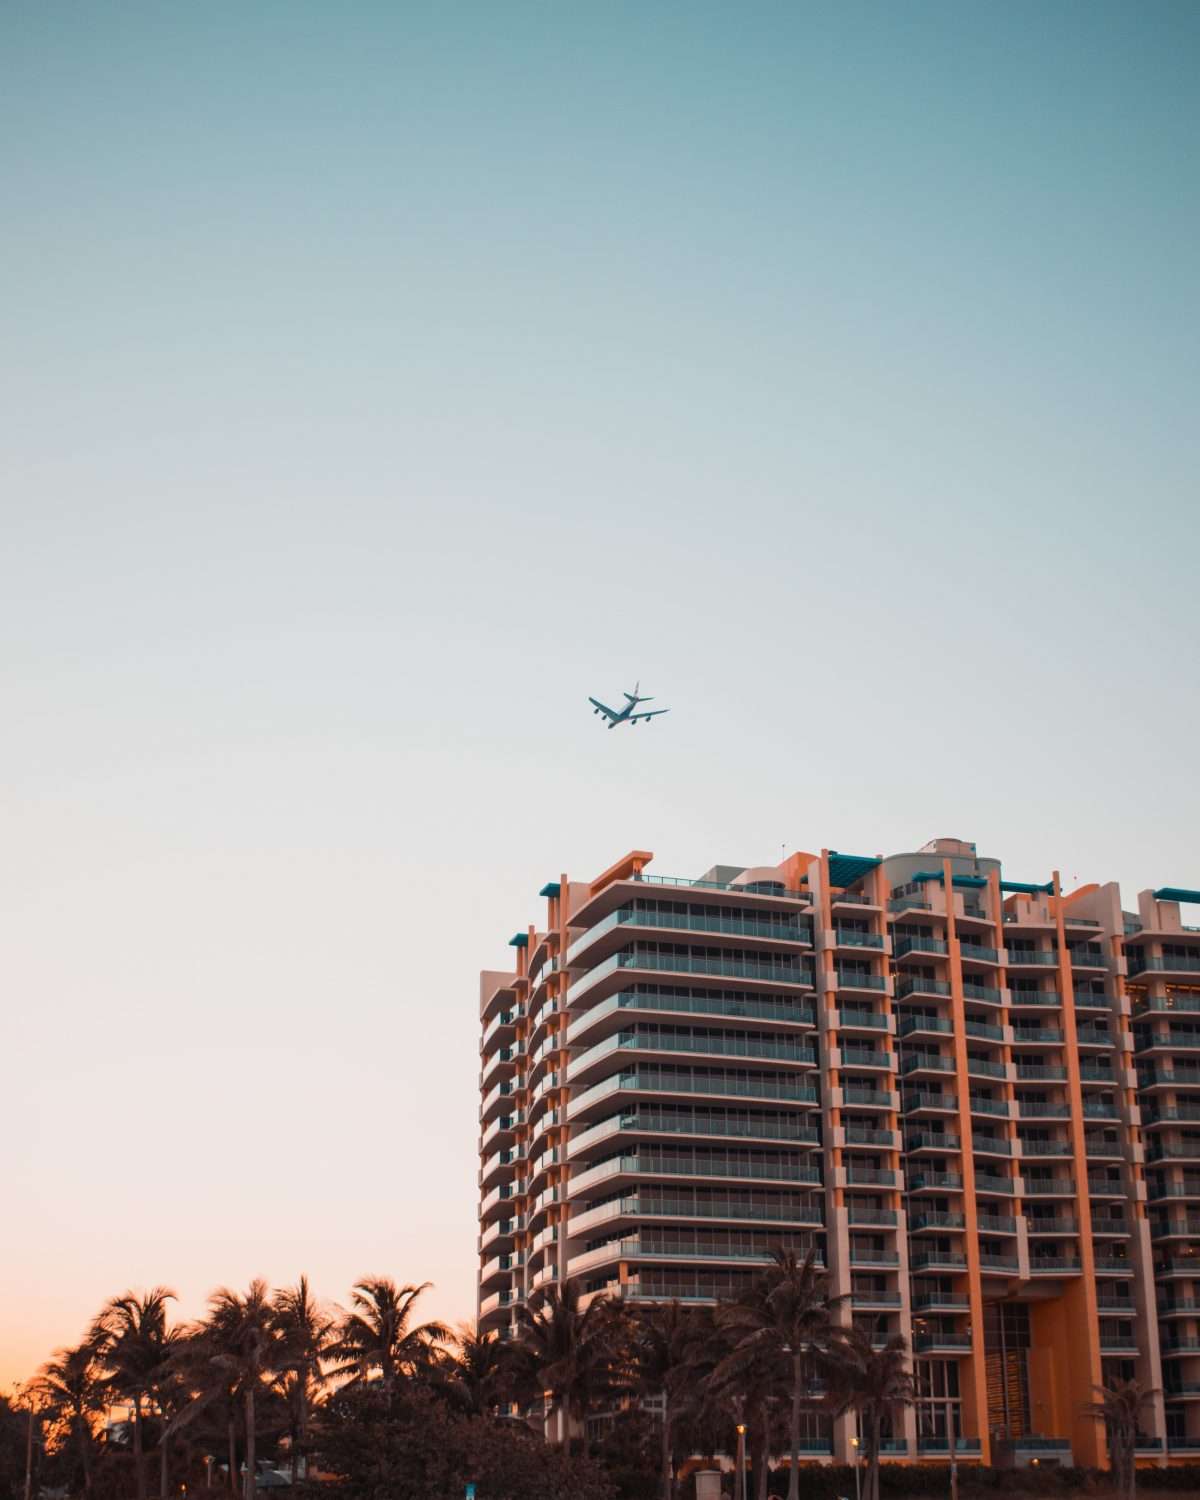 Fly over the hotel